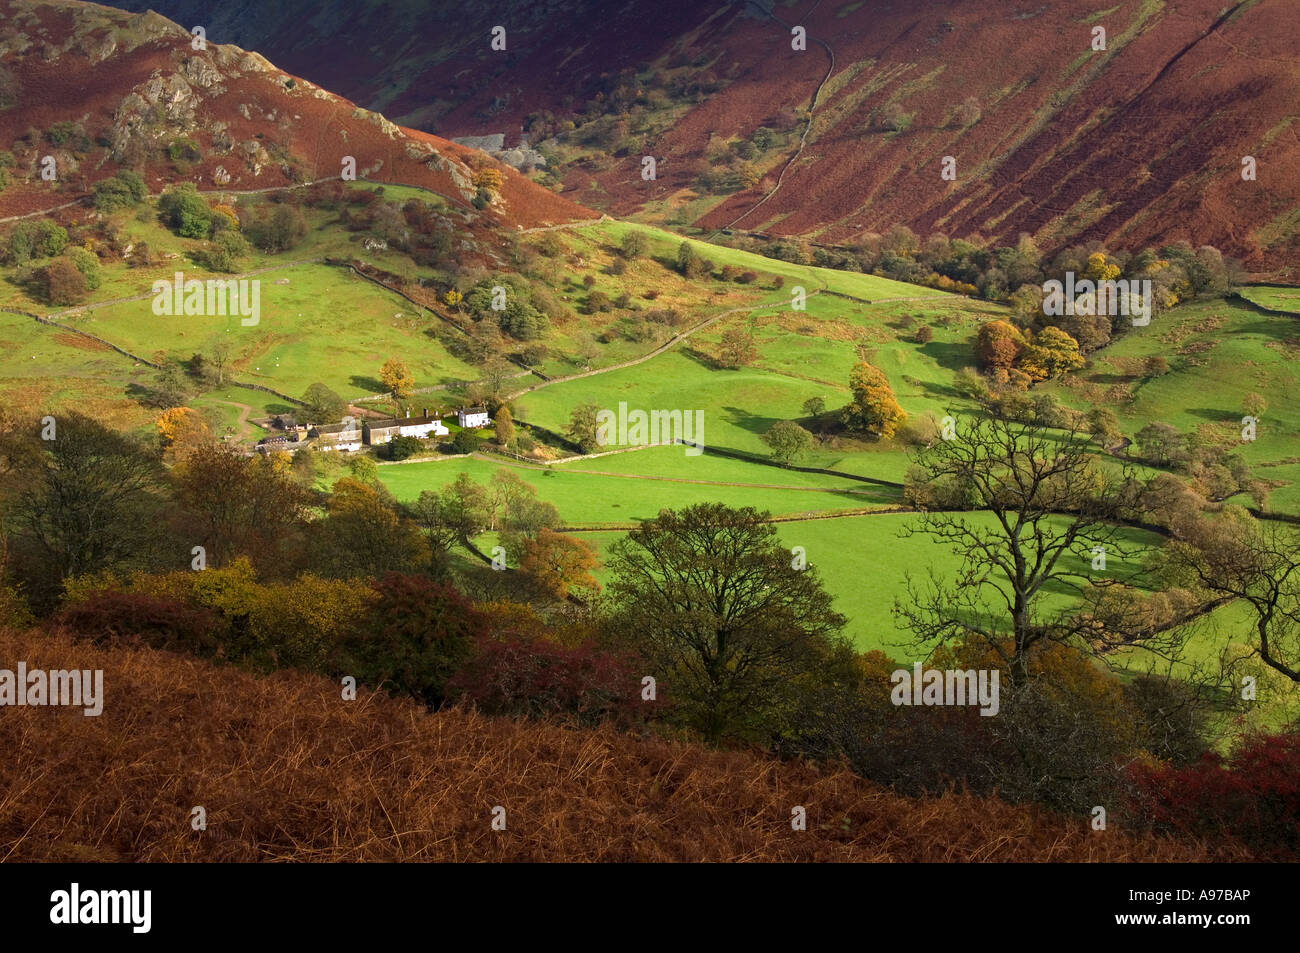 Beatrix Potter's Troutbeck Park Farm at the foot of The Tongue, Troutbeck Vale, Lake District, Cumbria, England, - Stock Image